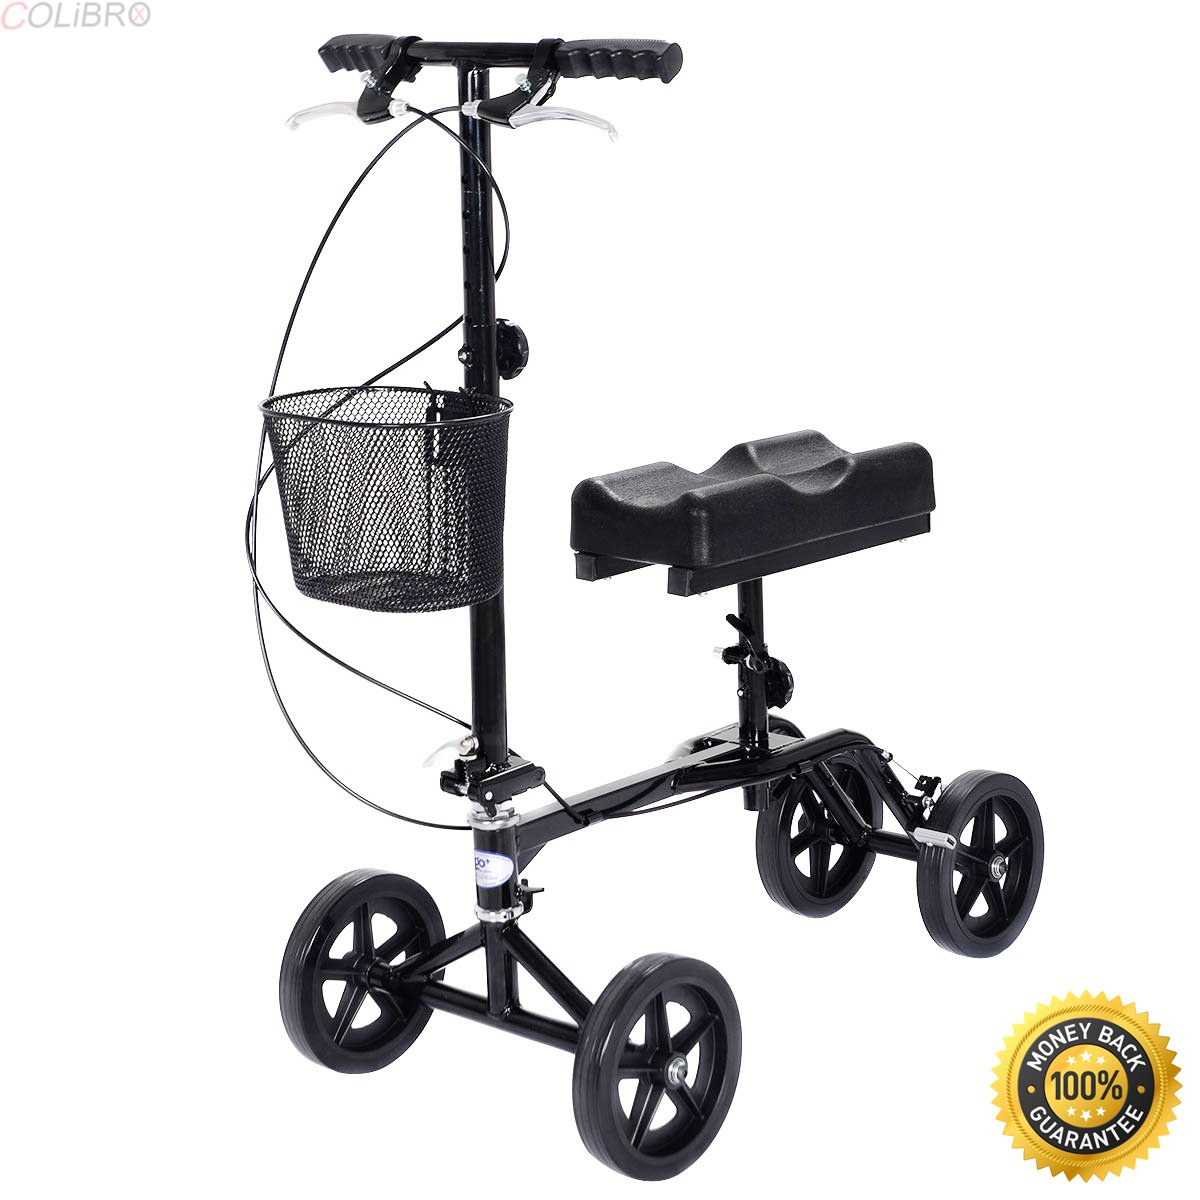 COLIBROX--New Steerable Foldable Knee Walker Scooter Turning Brake Basket Drive Cart Black,best knee walker,knee walker central,drive knee scooter,best rated knee scooter 2017,knee scooter